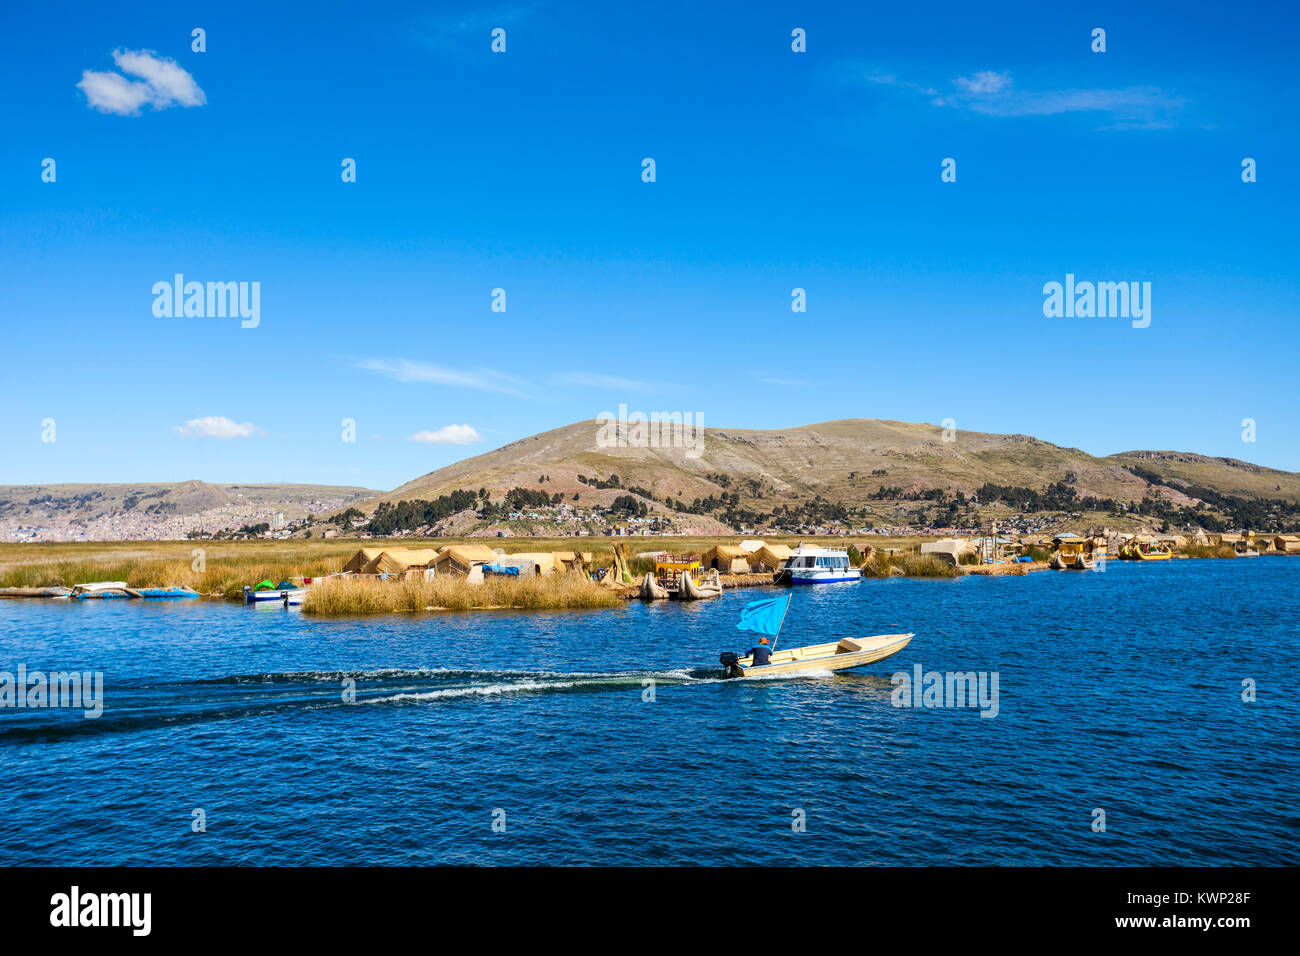 Titicaca is a large, deep lake in the Andes on the border of Peru and Bolivia - Stock Image